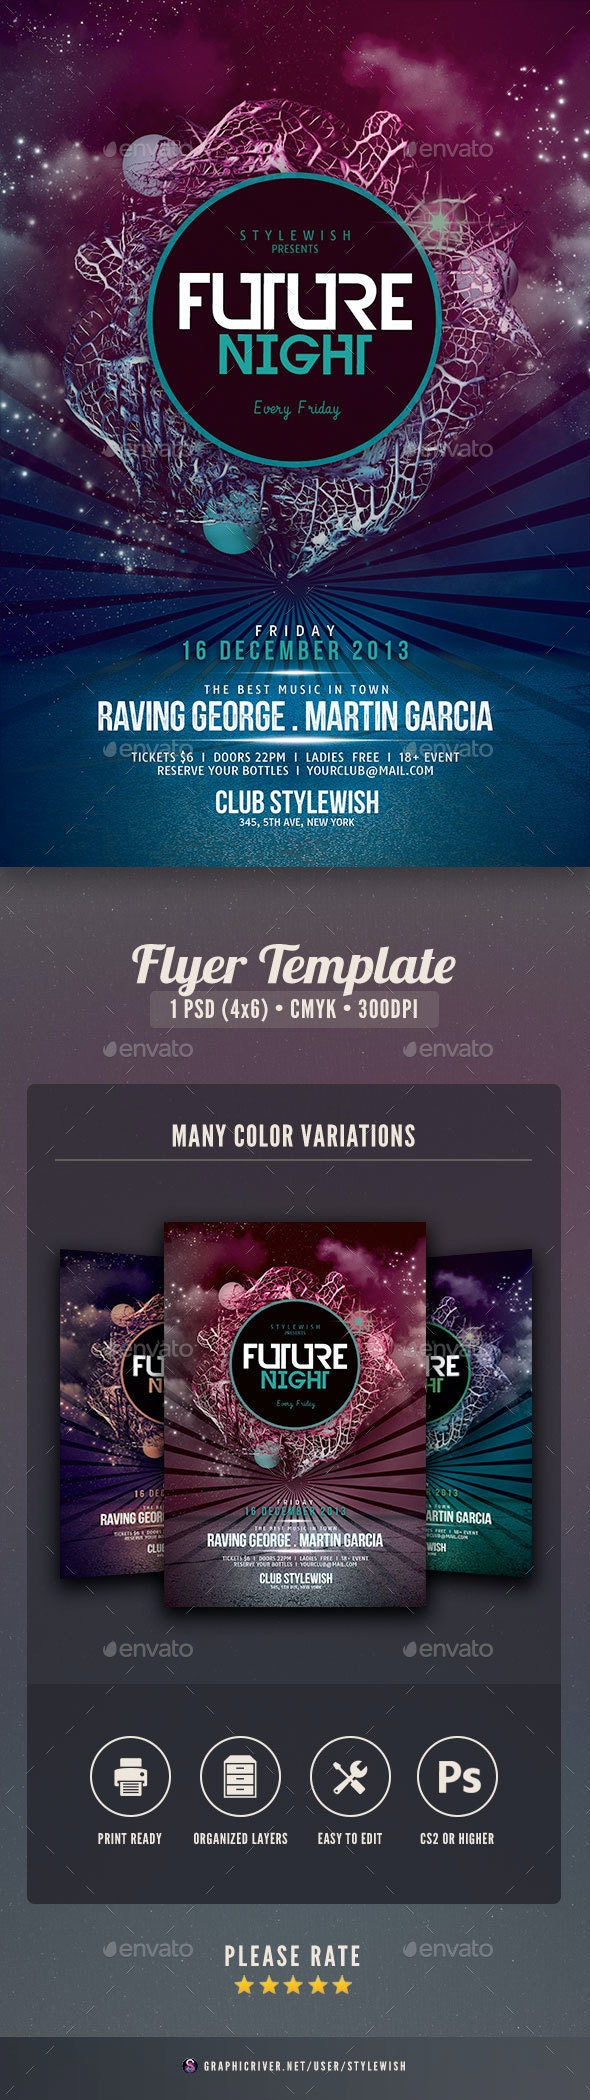 Future Night Flyer - Clubs & Parties Events